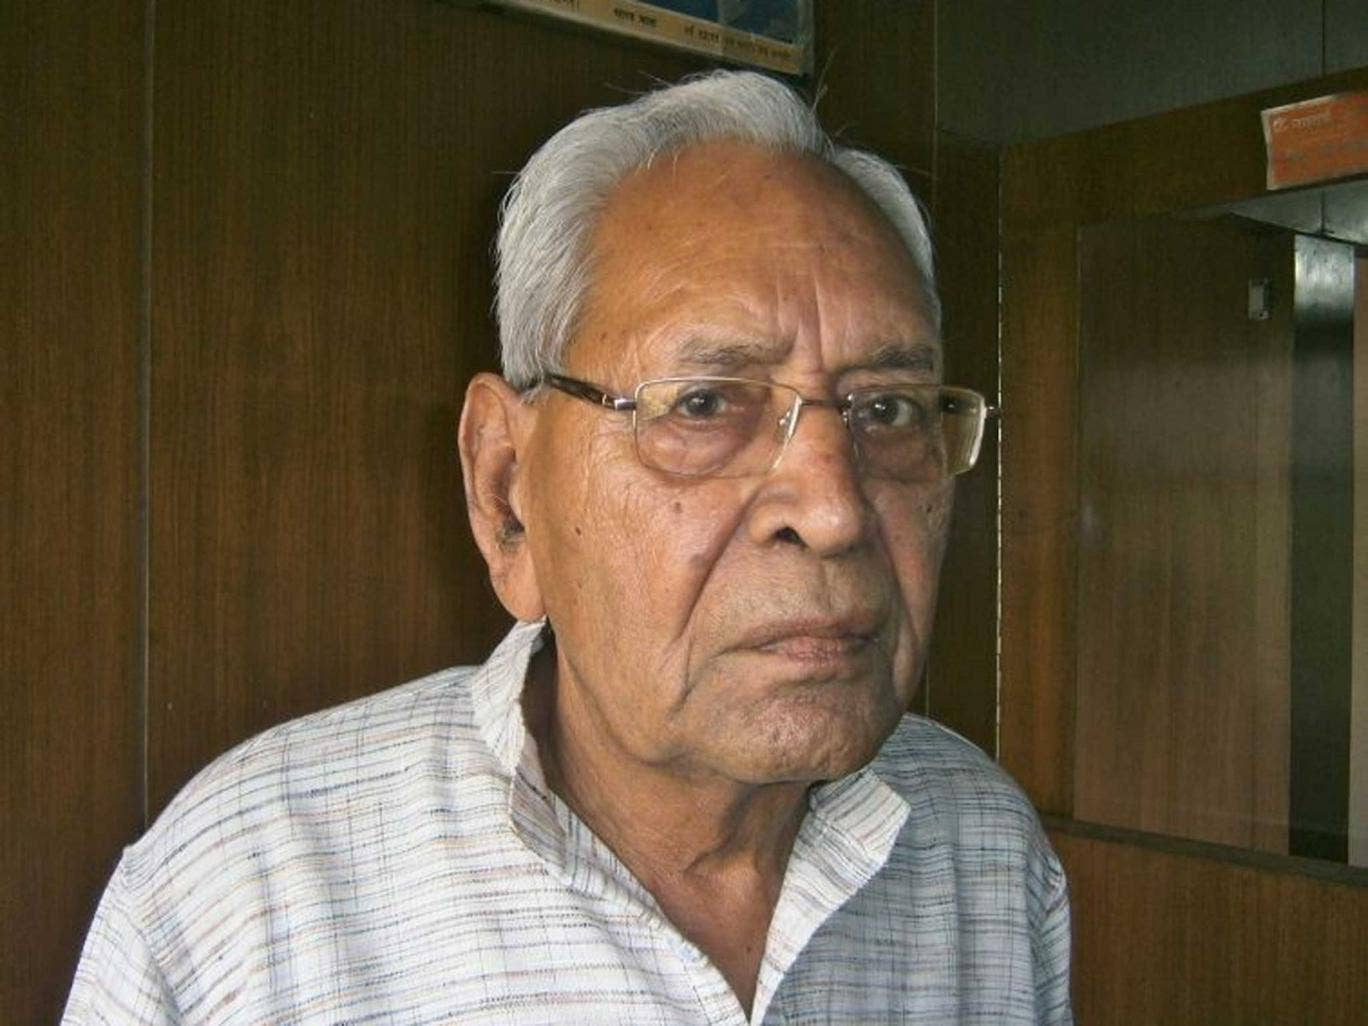 Crusader: Dinanath Batra, who, like India's new premier, once belonged to the right-wing